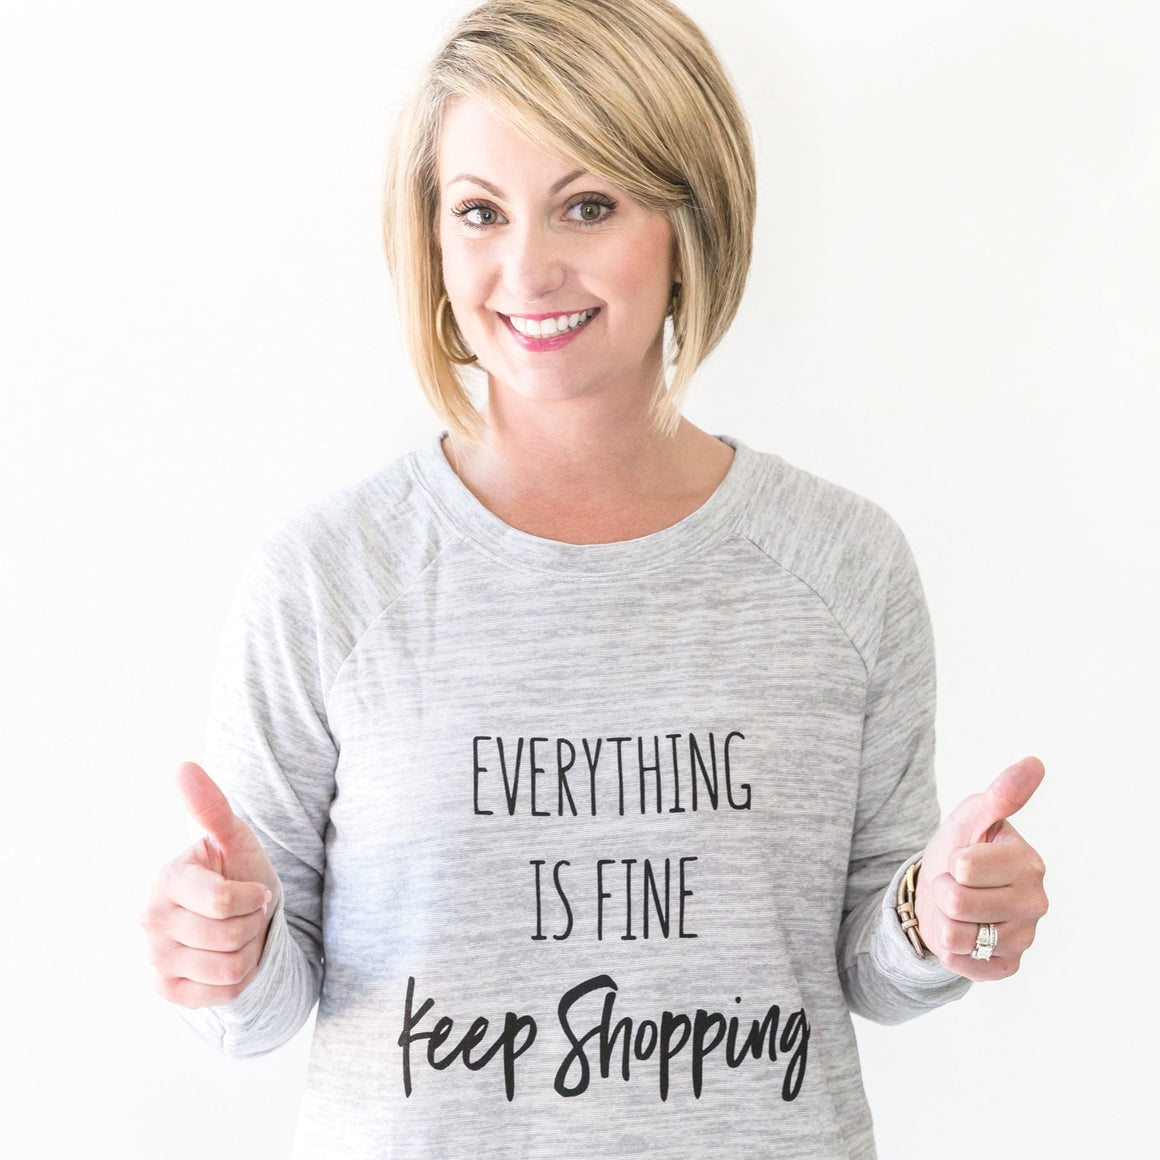 Sweatshirt | Keep Shopping | Heather Gray